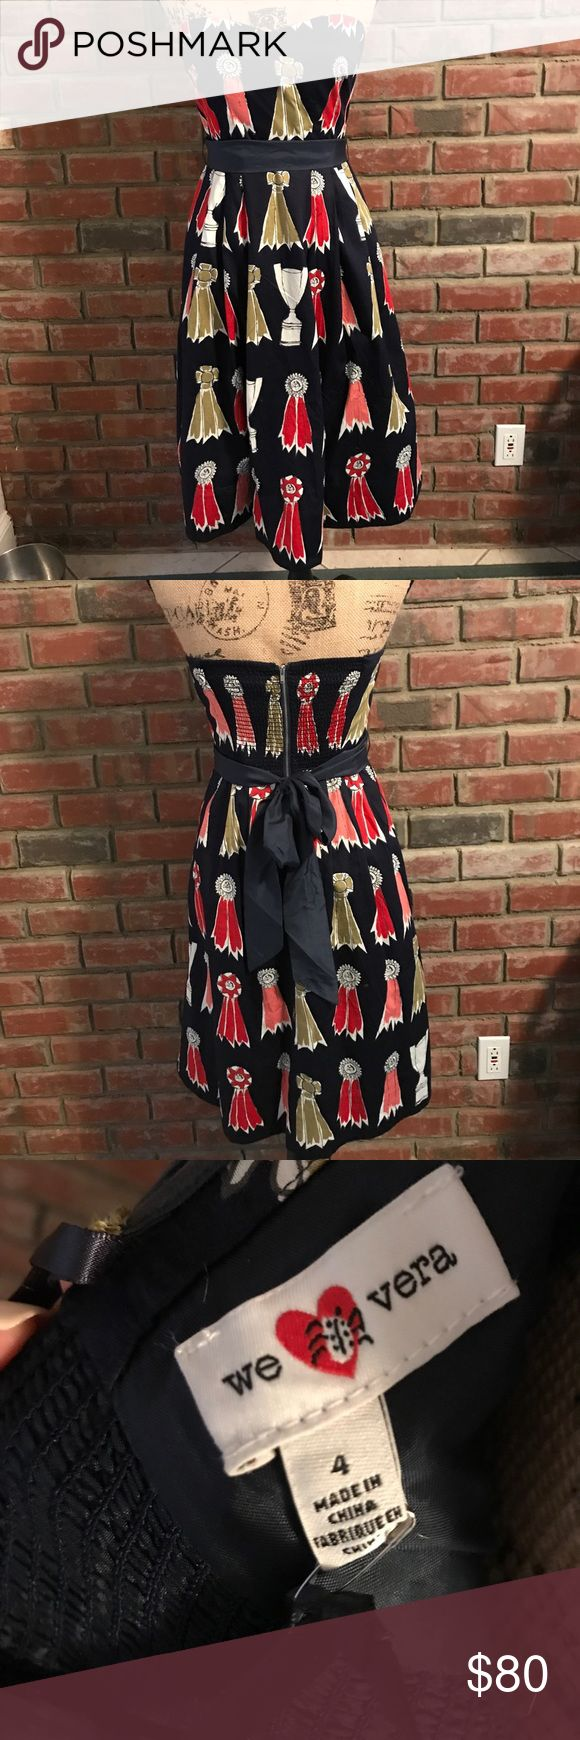 Anthropologie dress Size 4 NWT. Perfect for Carolina cup! Bought for $168. 100% cotton (lining is 100% acetate). Comes with added straps Anthropologie Dresses Strapless